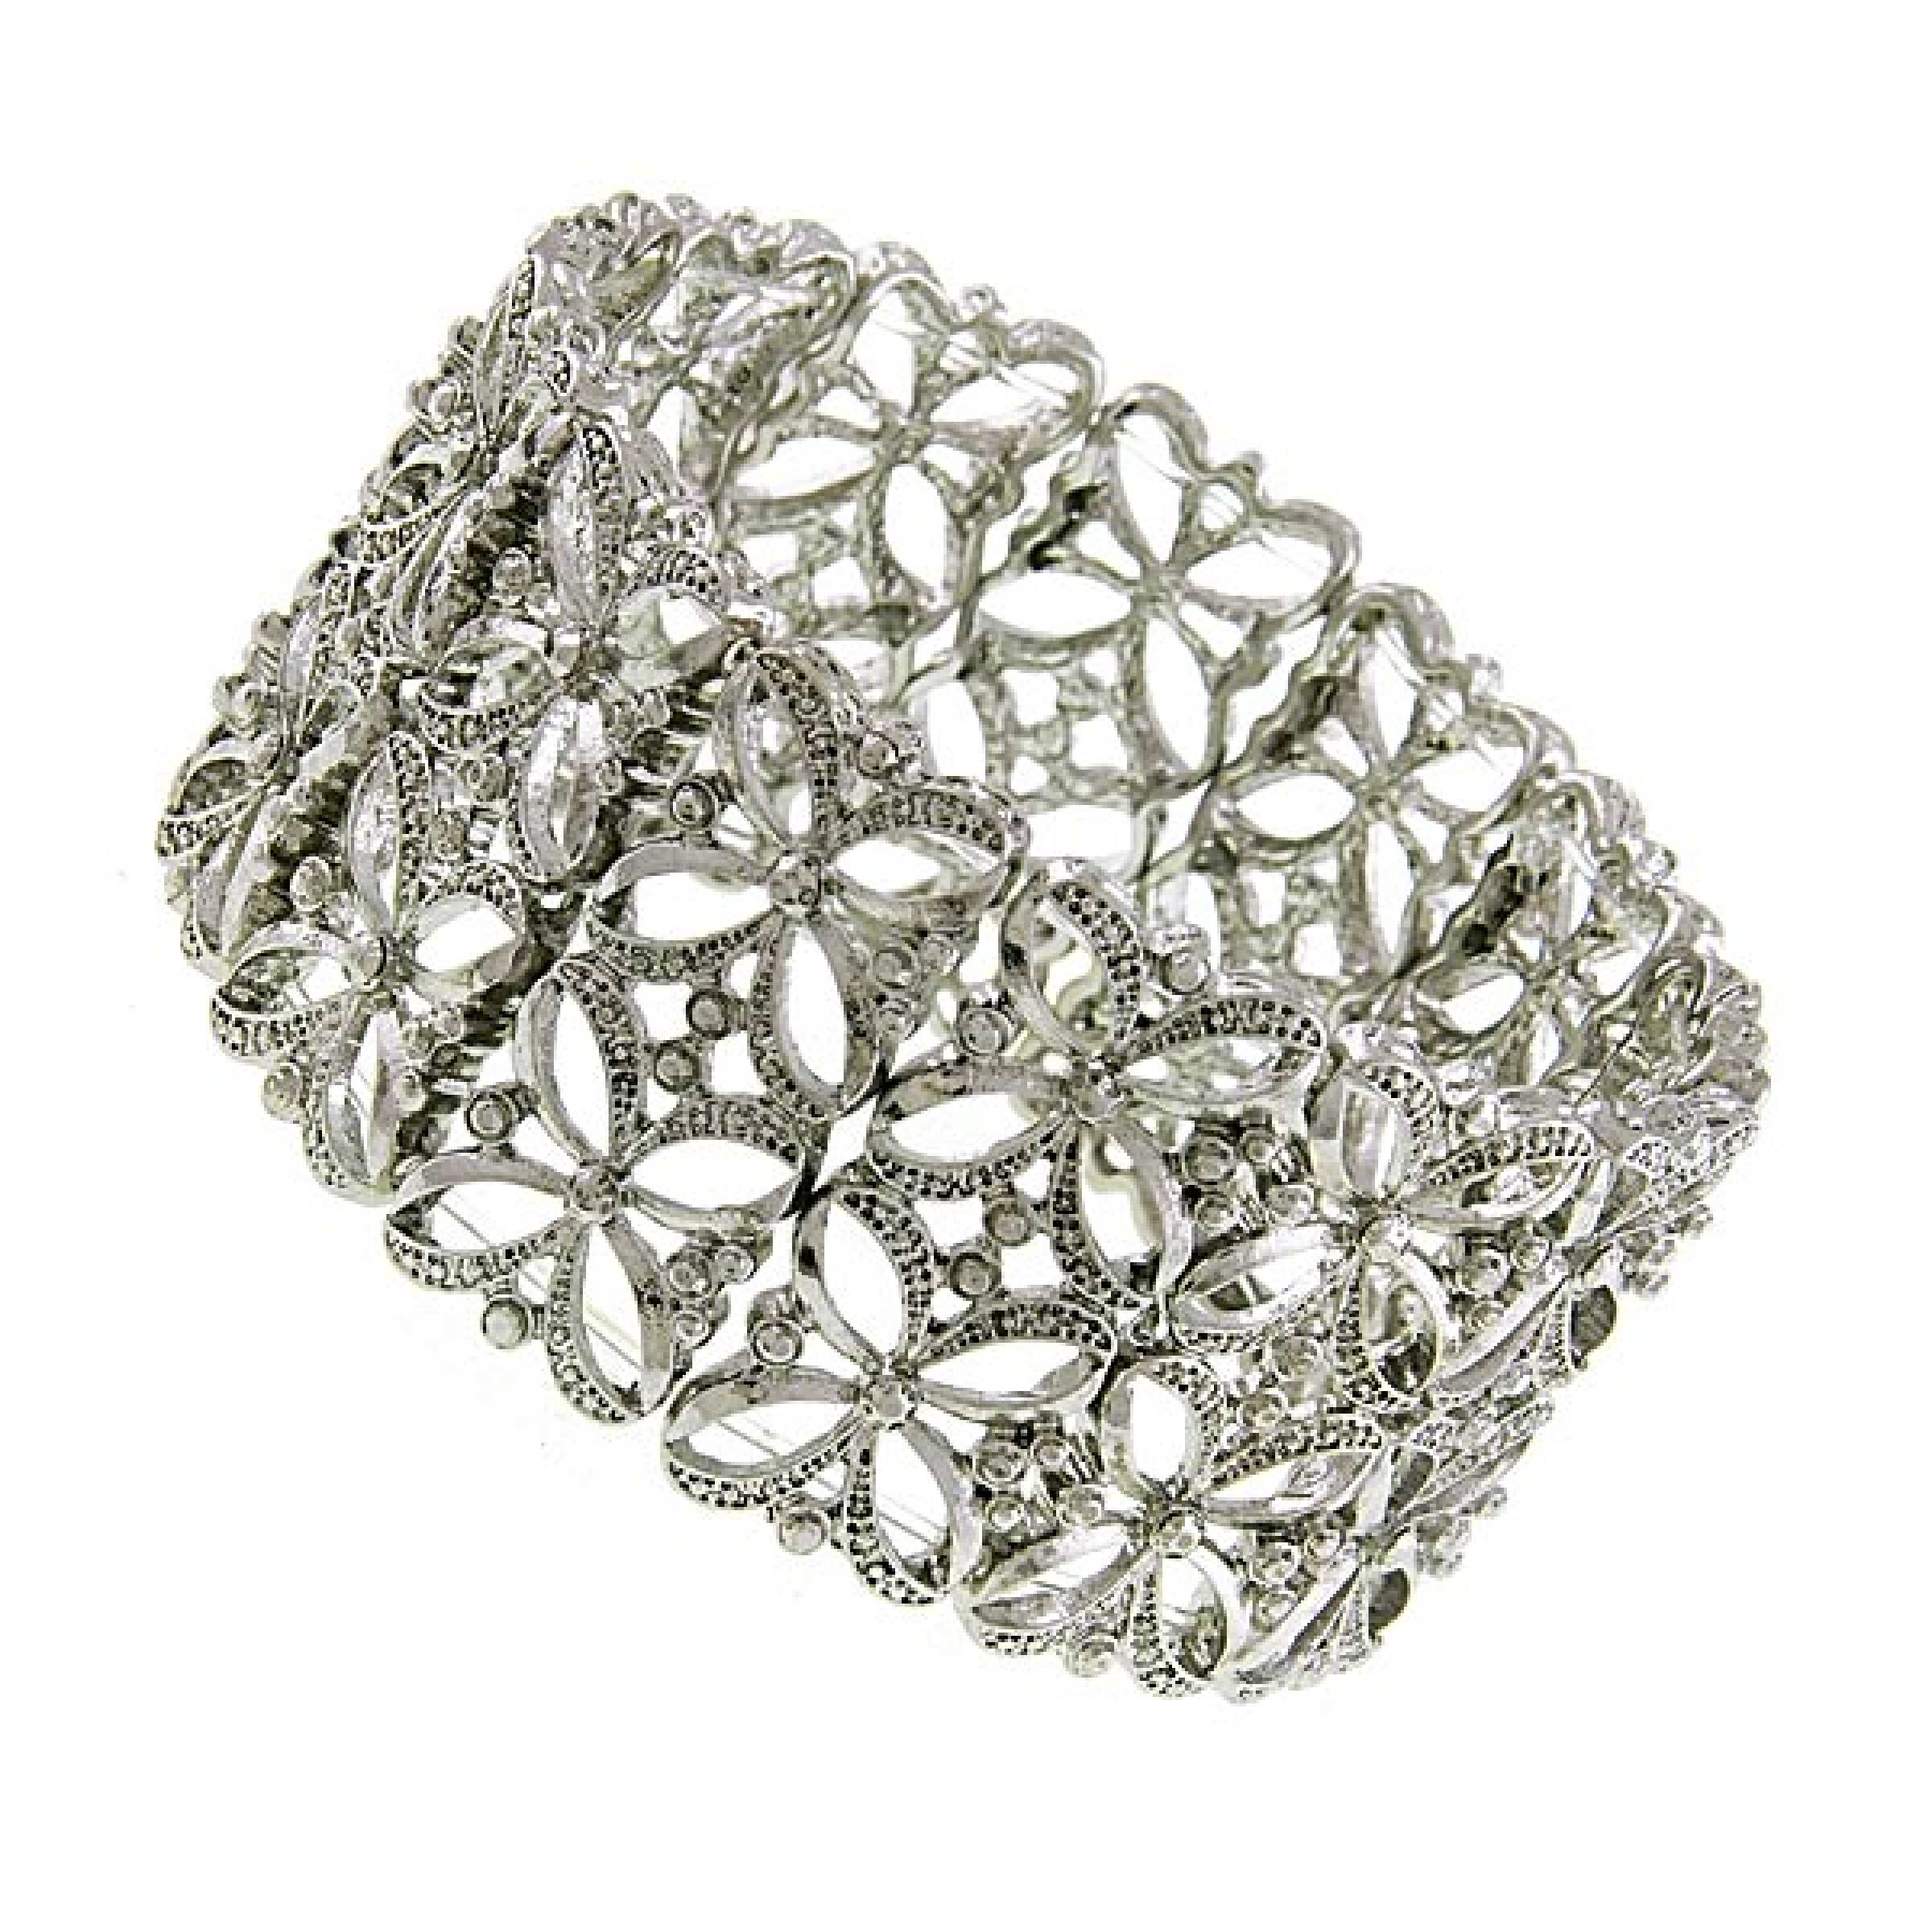 1928 Jewelry Vintage Inspired Lace Stretch Cuff Bracelet at Sears.com